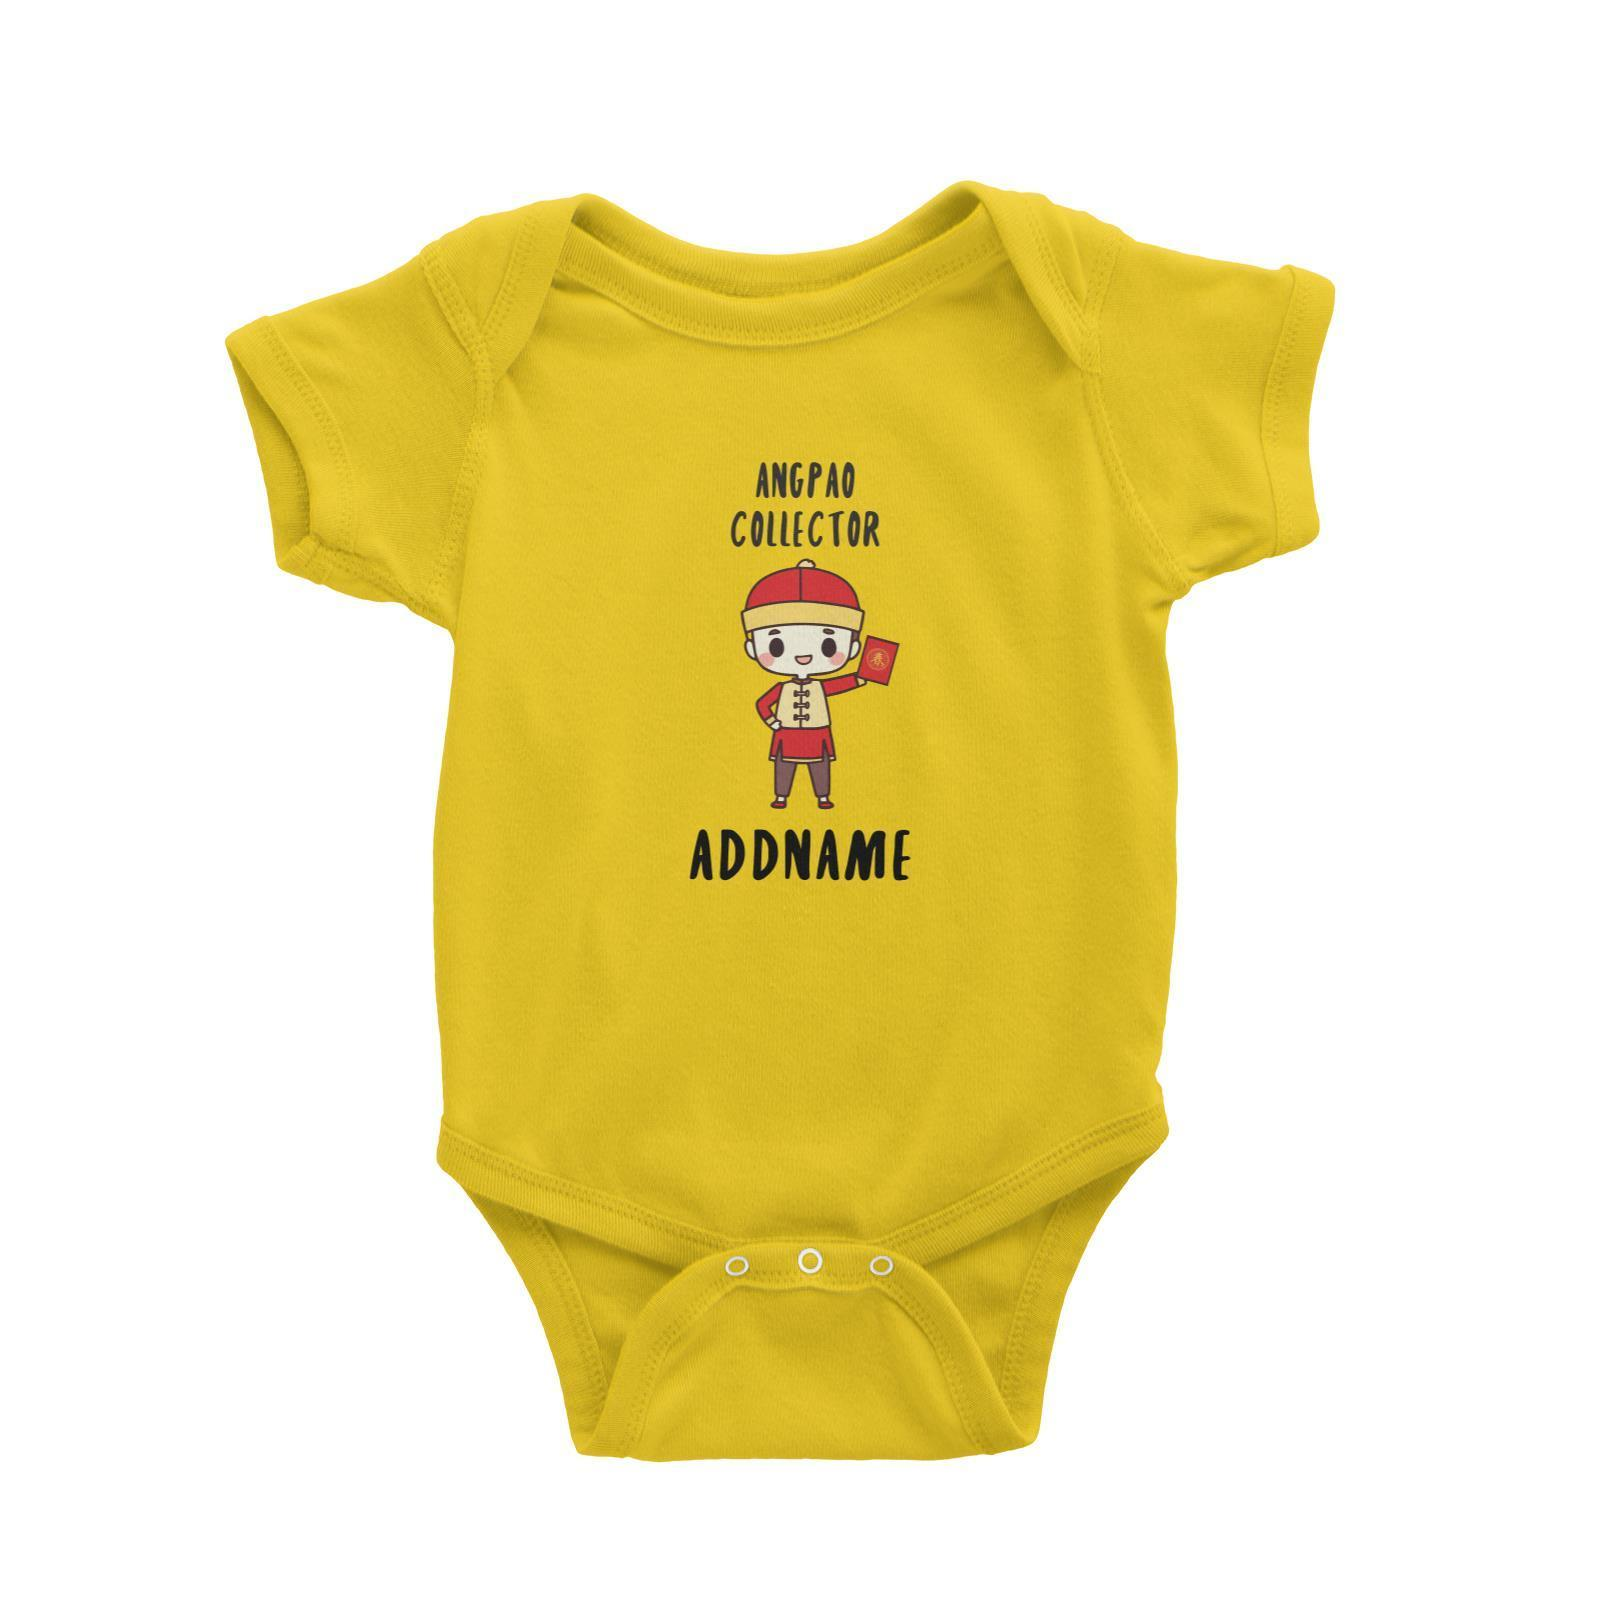 9d38e7f86ad Little Boy Angbao Collector customizable Romper – Popsicle Baby